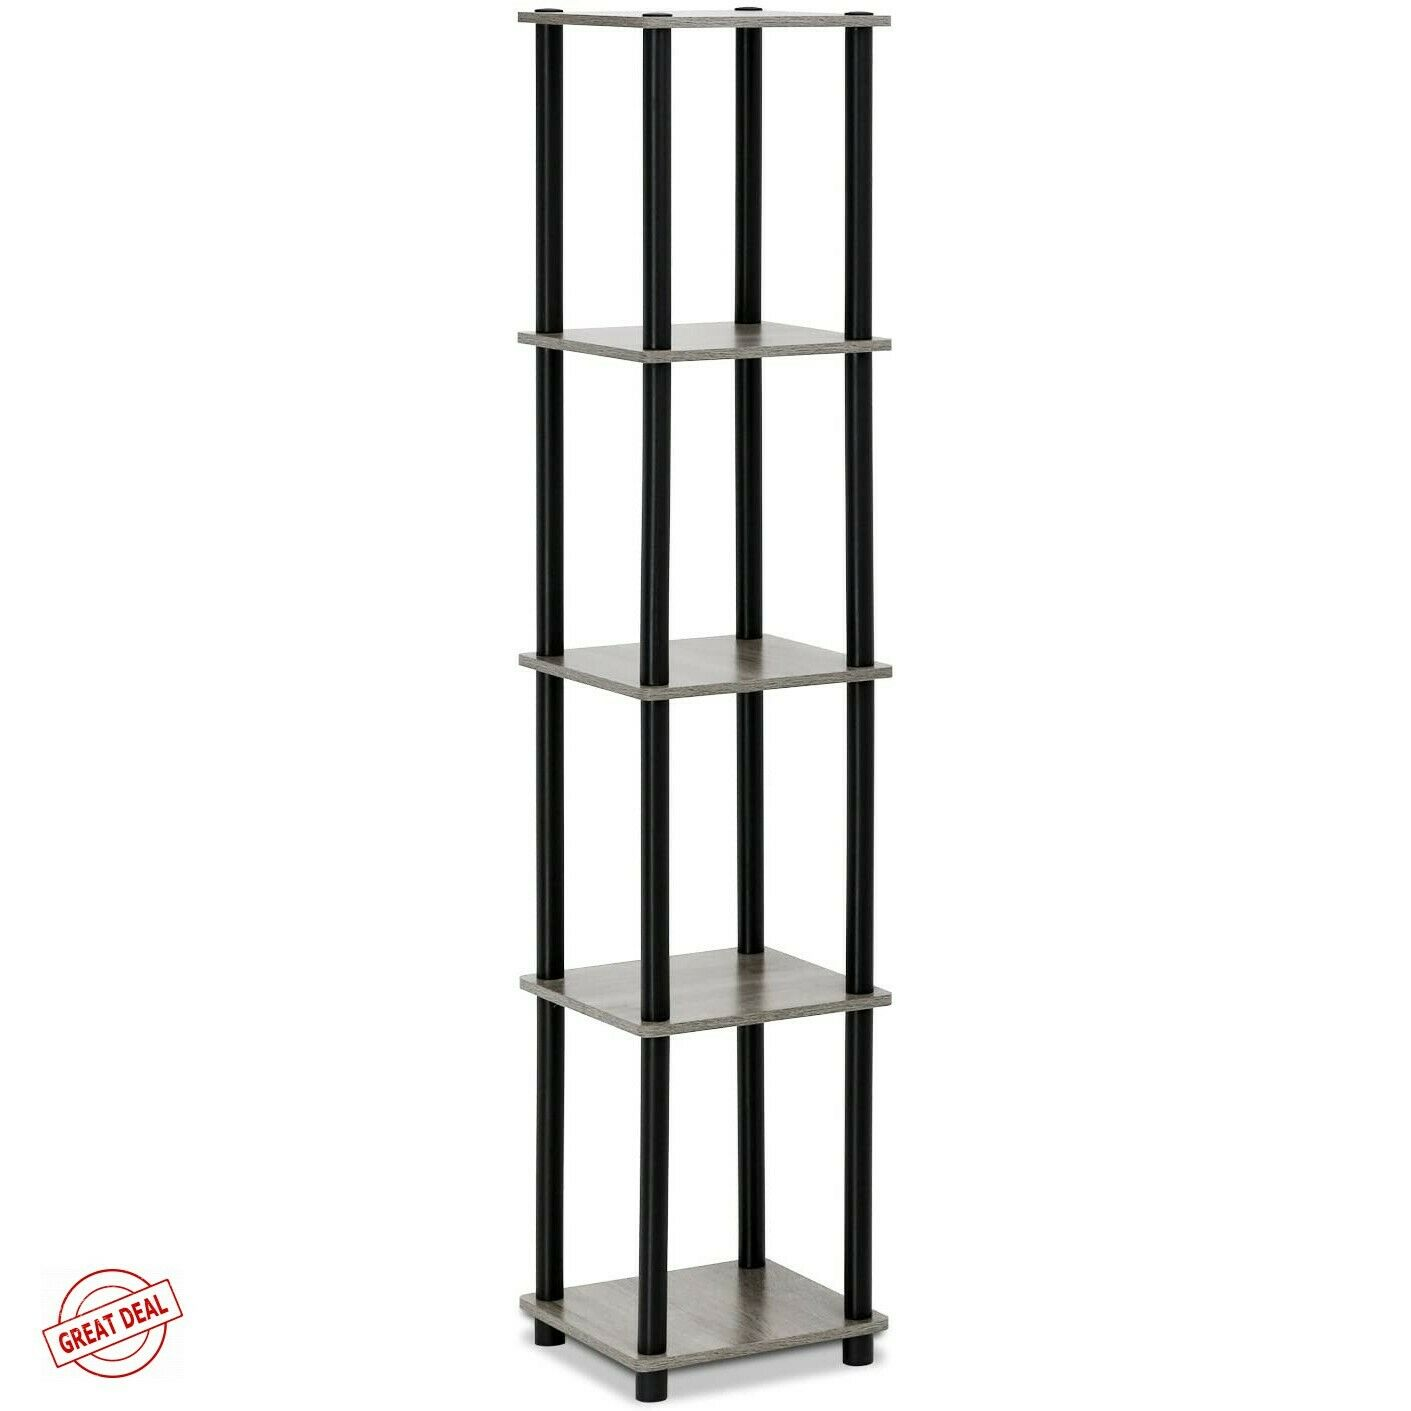 Furinno Turn-N-Tube 5-Tier Corner Square Rack Display Shelf,